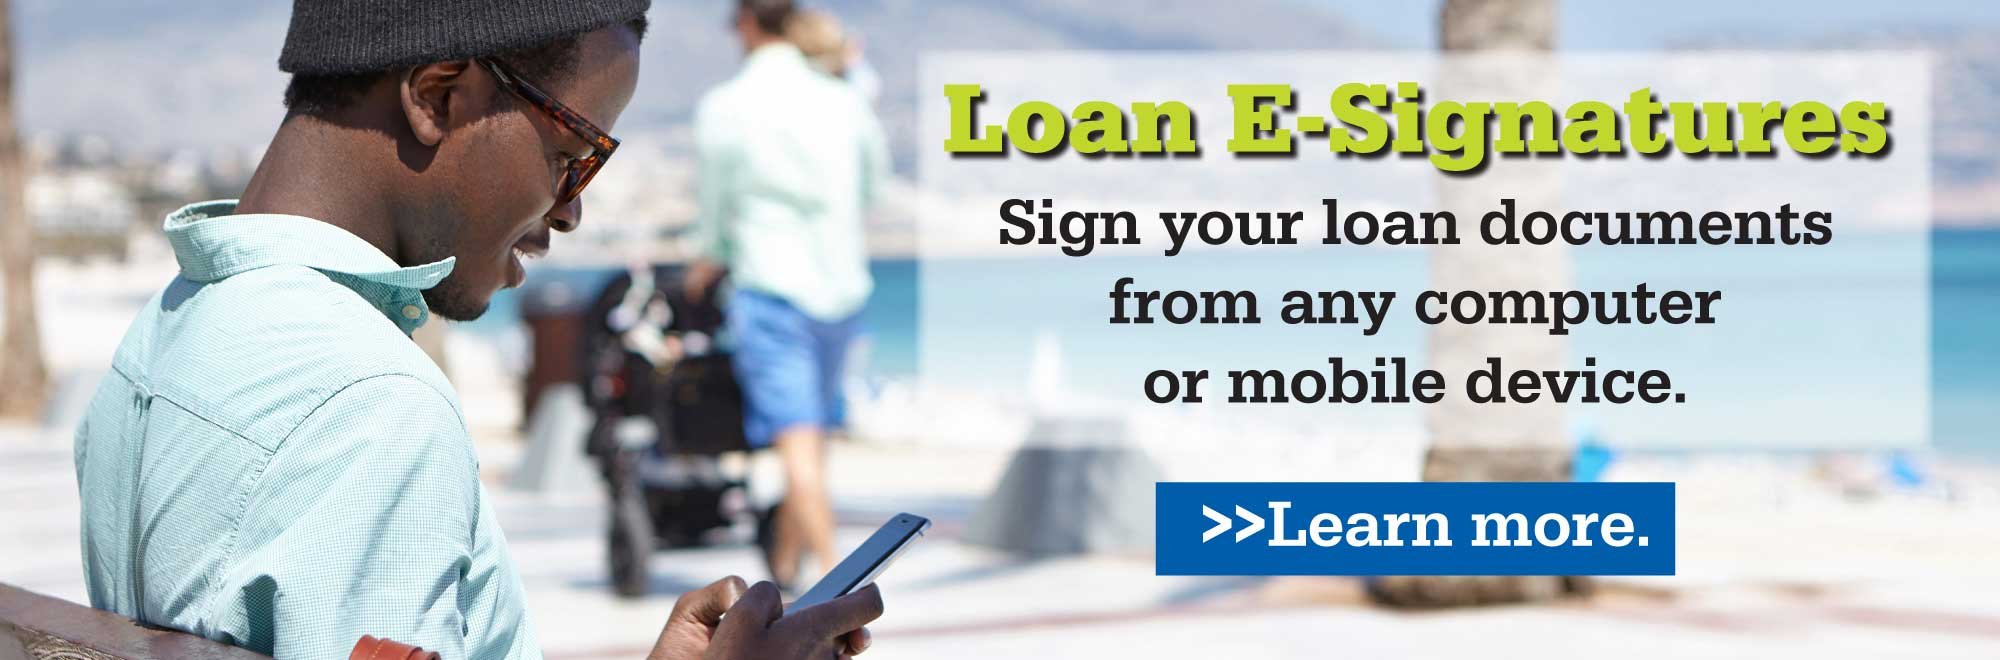 With our loan e-signature service, you can sign your loan papers anywhere from any mobile device. Just ask for it when you get your next loan with members first.